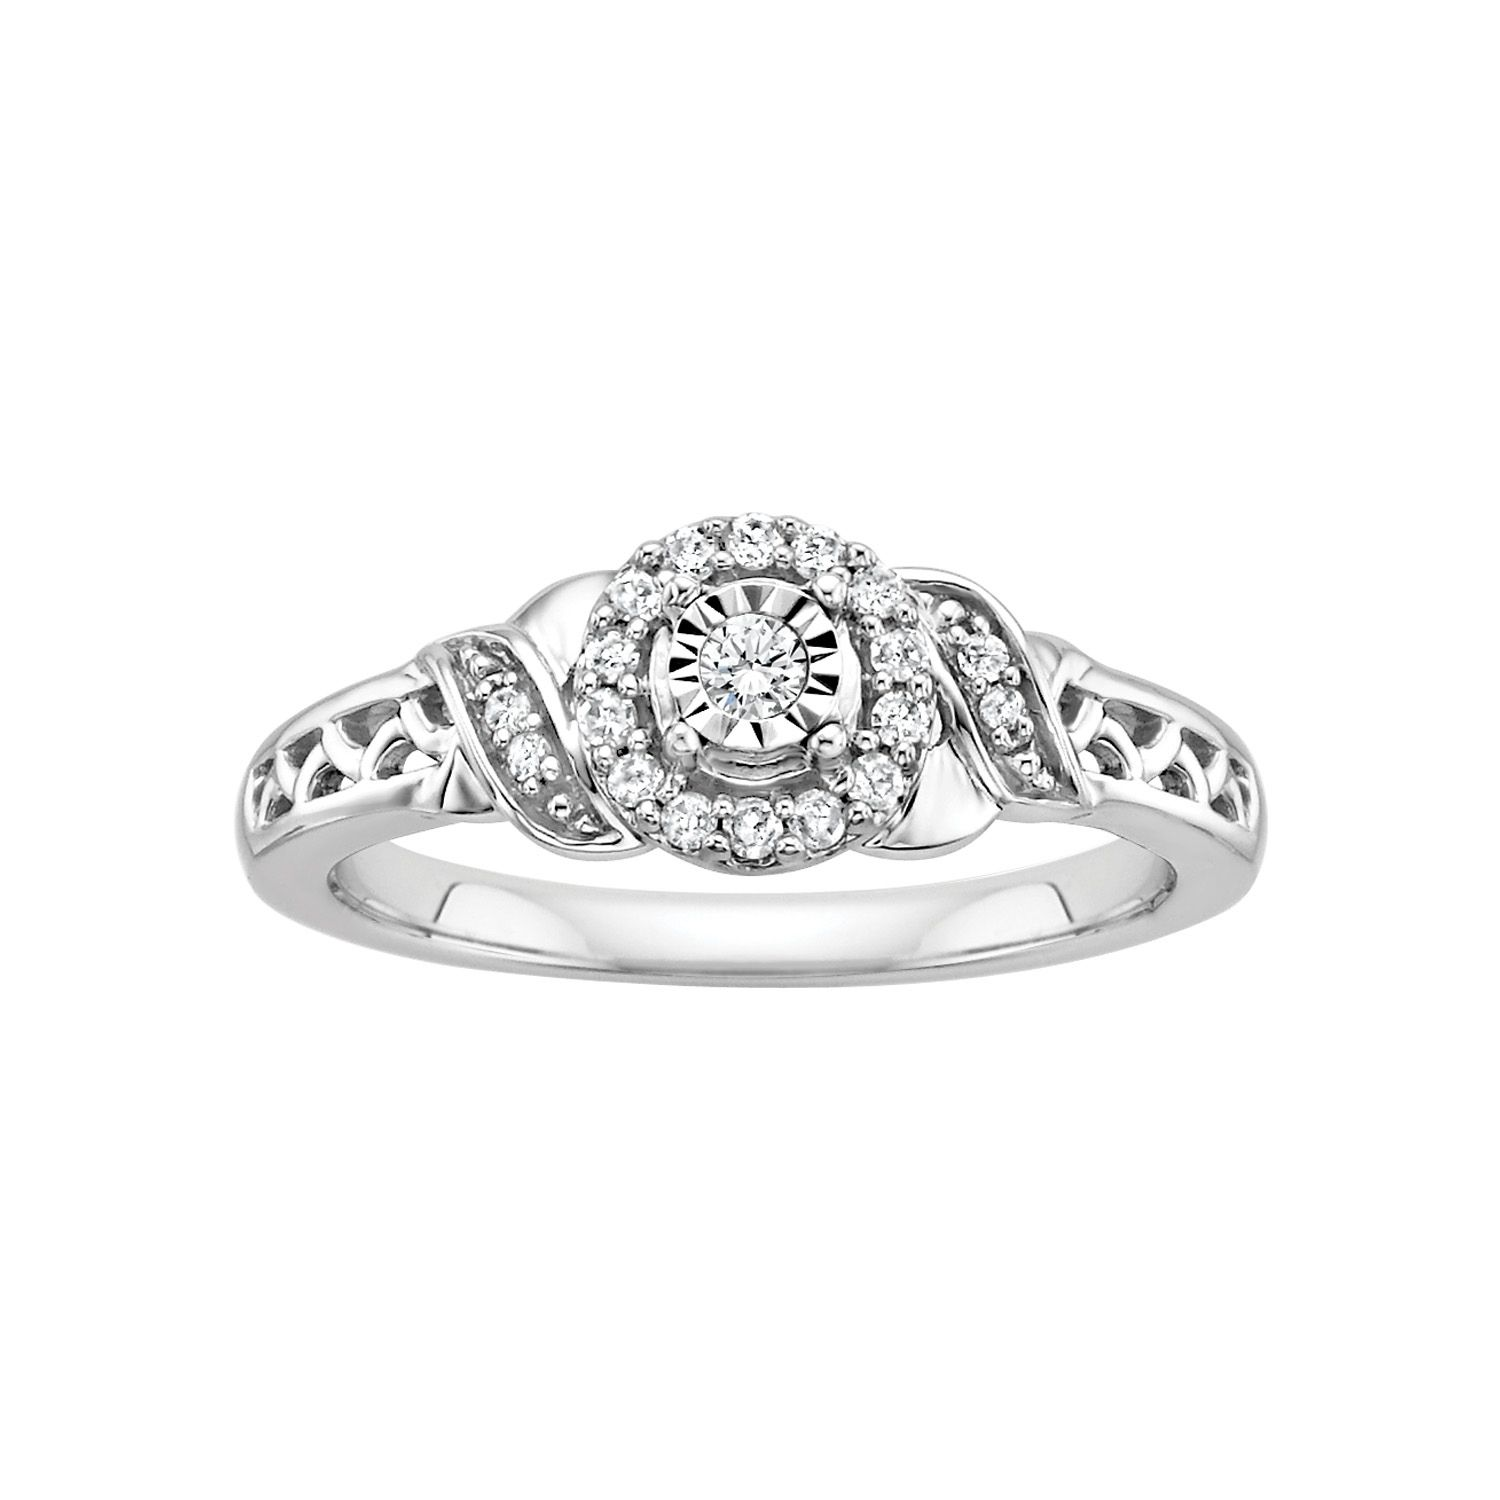 Sterling Silver 2.5mm Petite Twisted Vine Simulated Diamond Ring Wedding Band Matching Ring